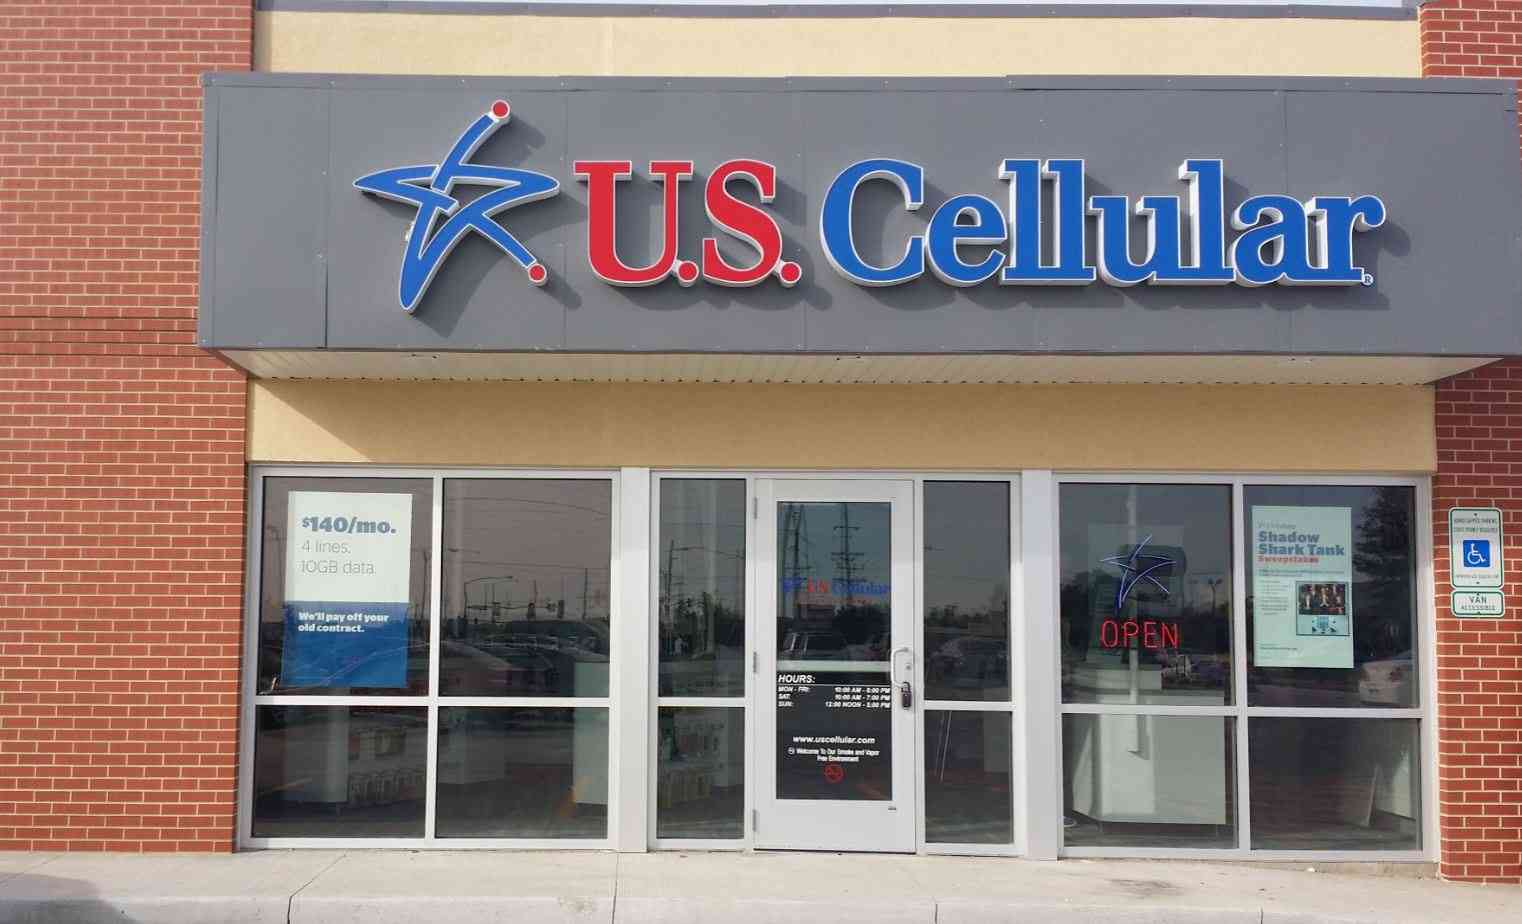 UScellular in Marion, Iowa